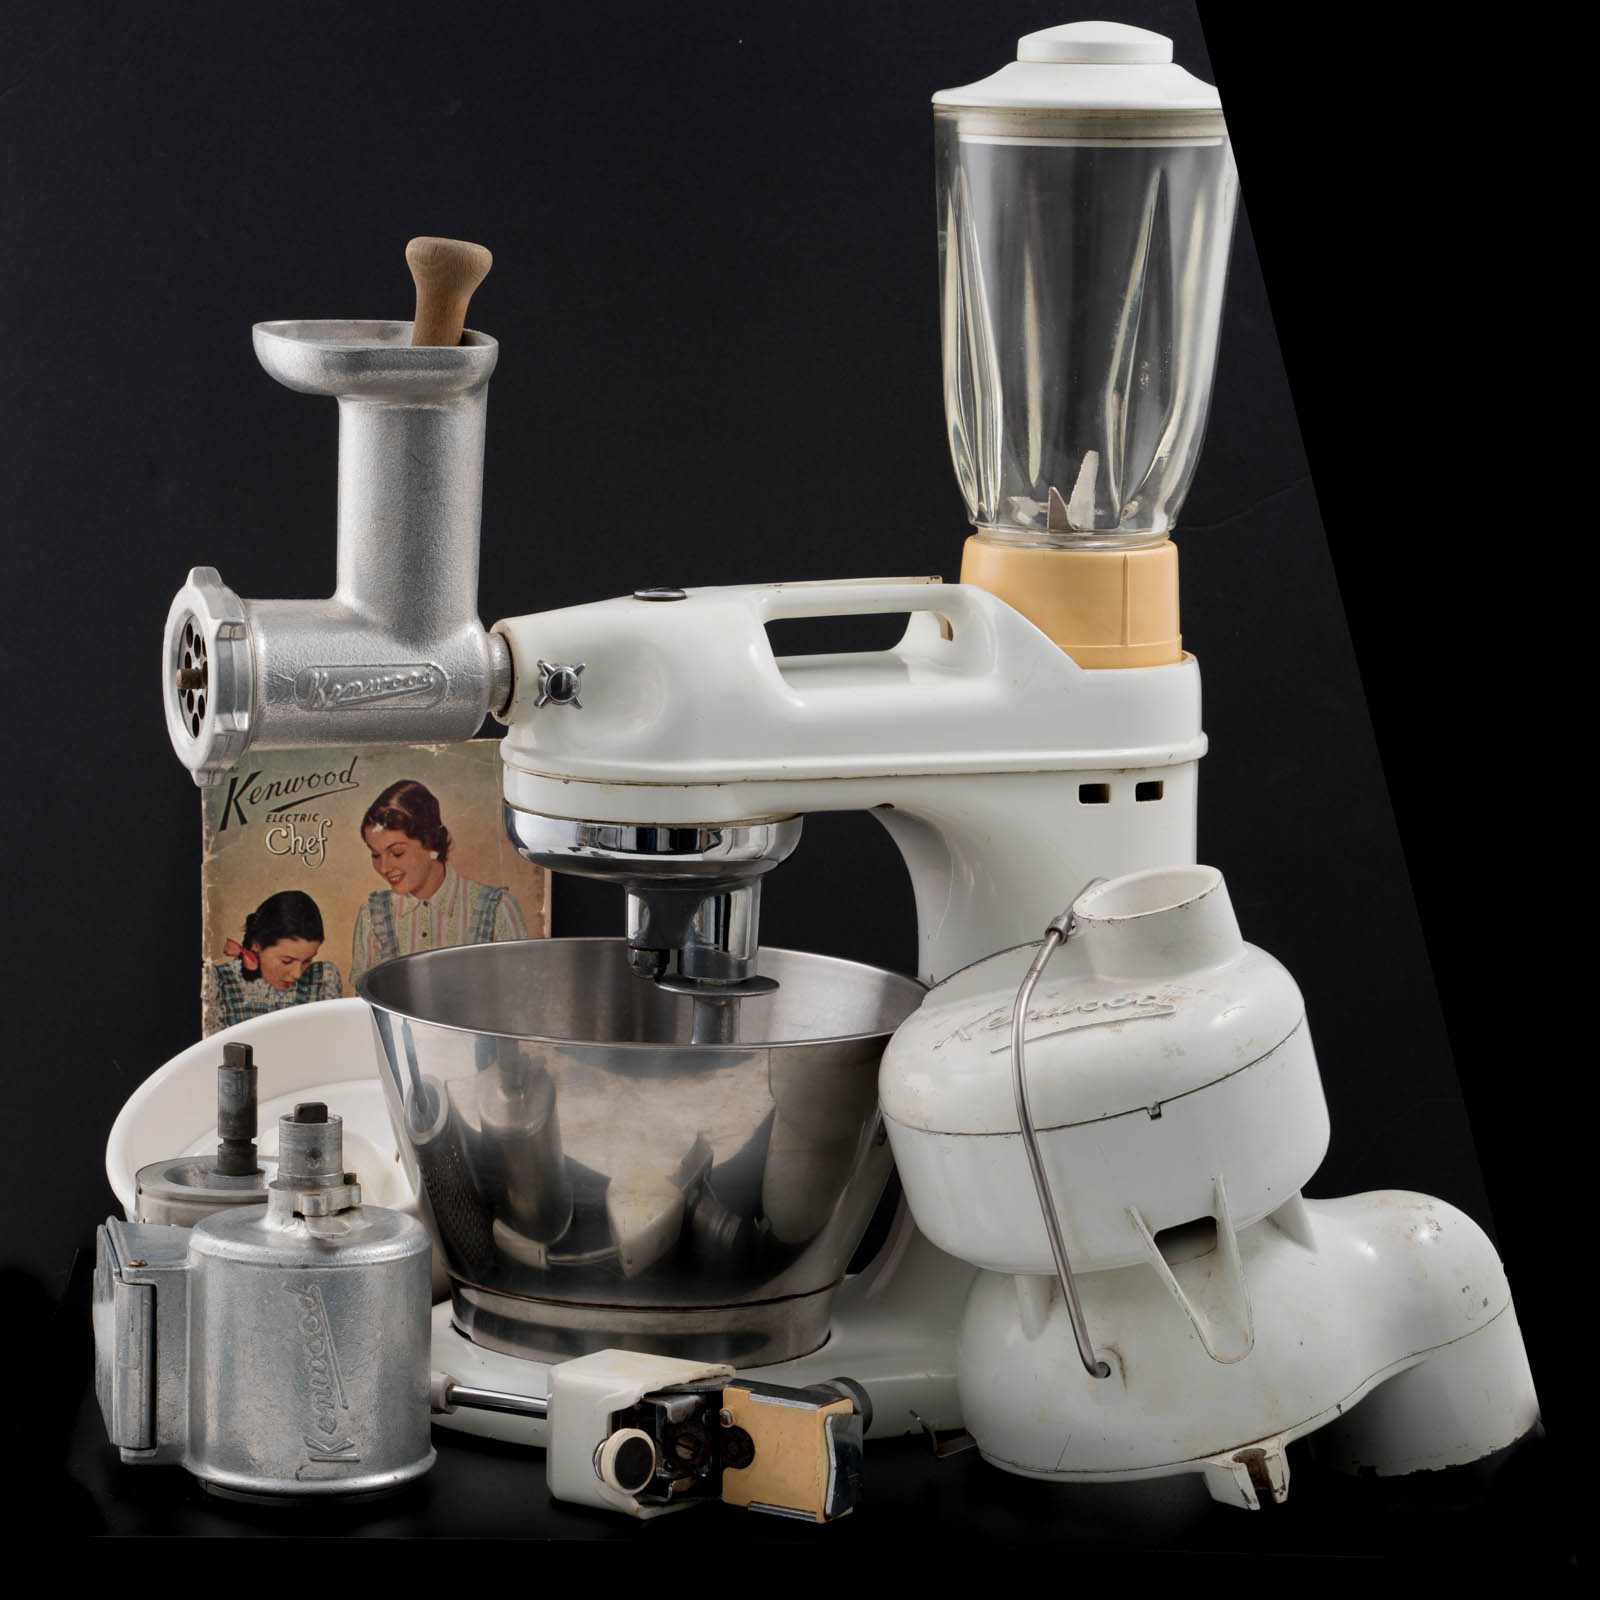 Kenwood Chef -18